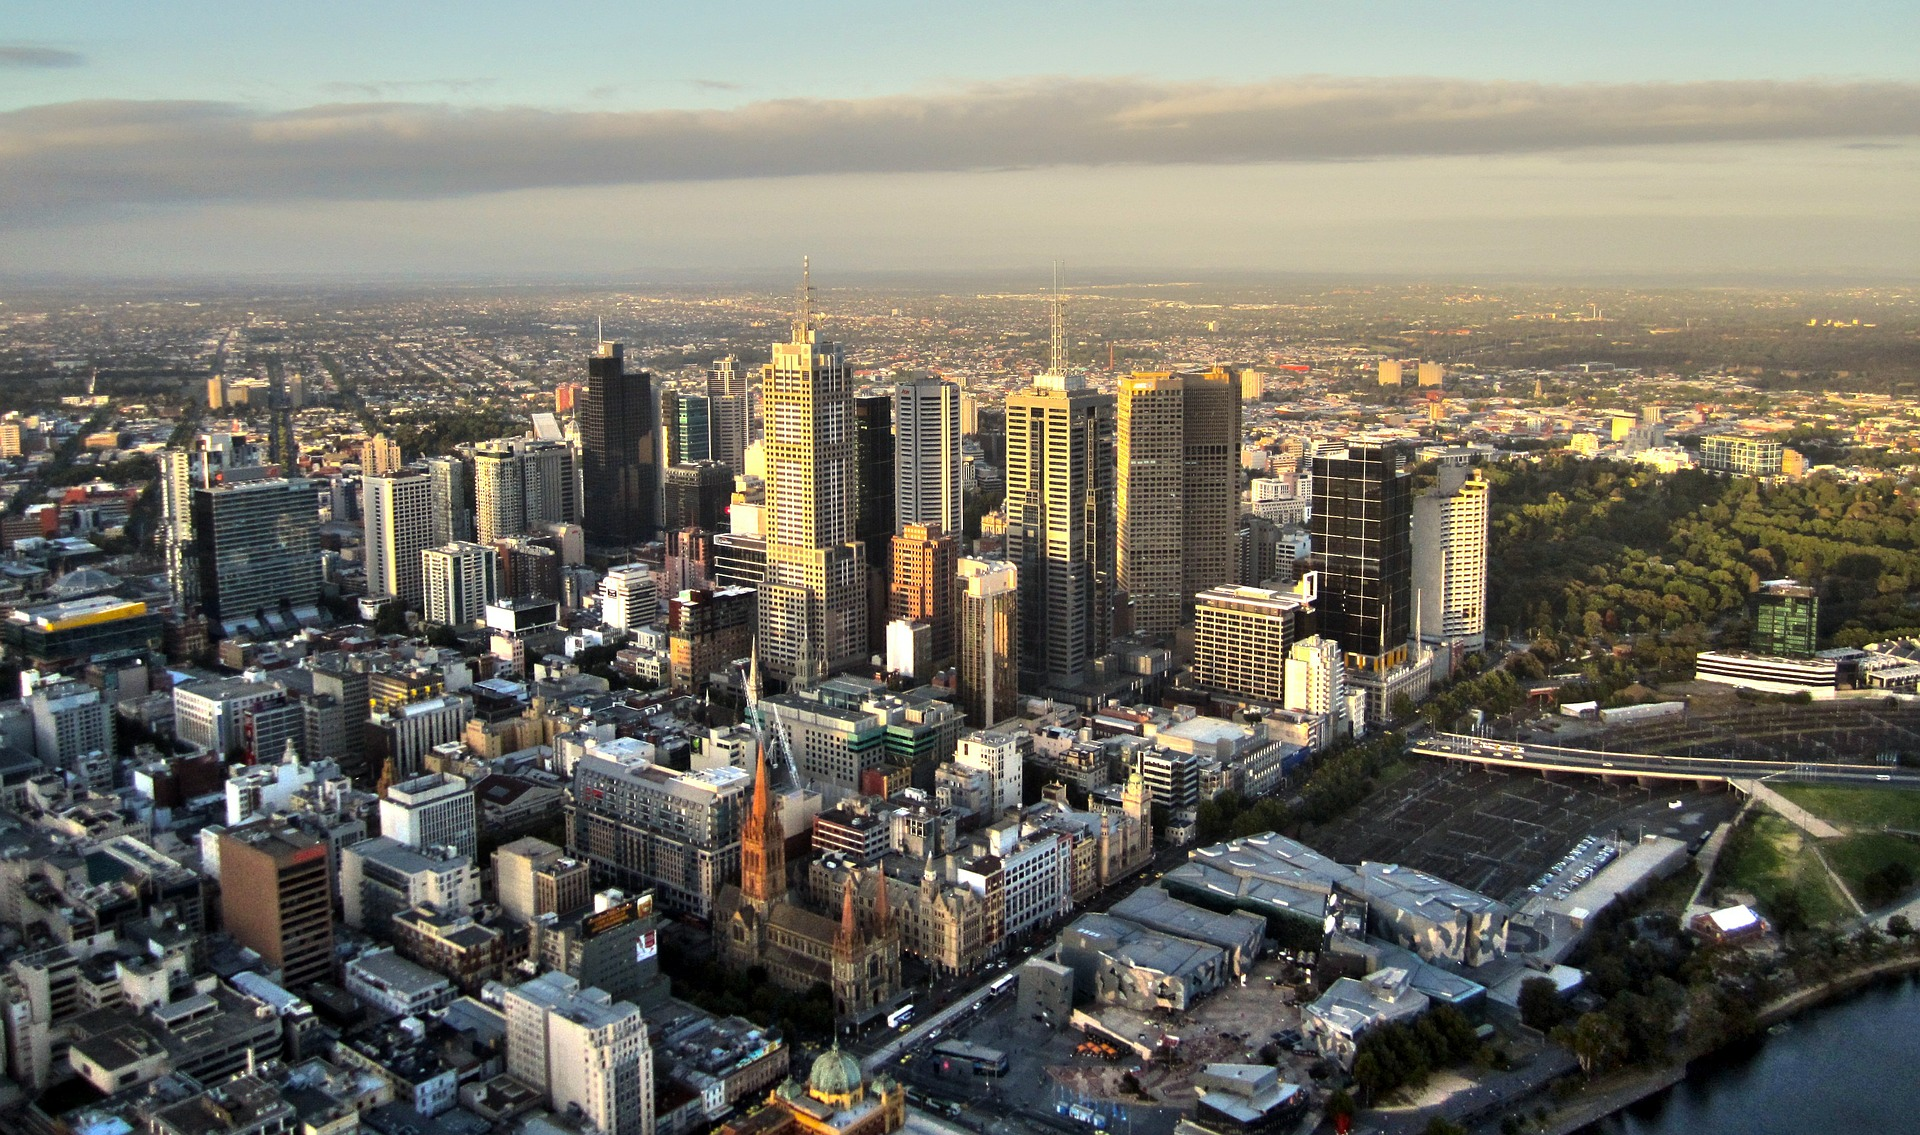 Melbourne's undersupply leads to housing unaffordability